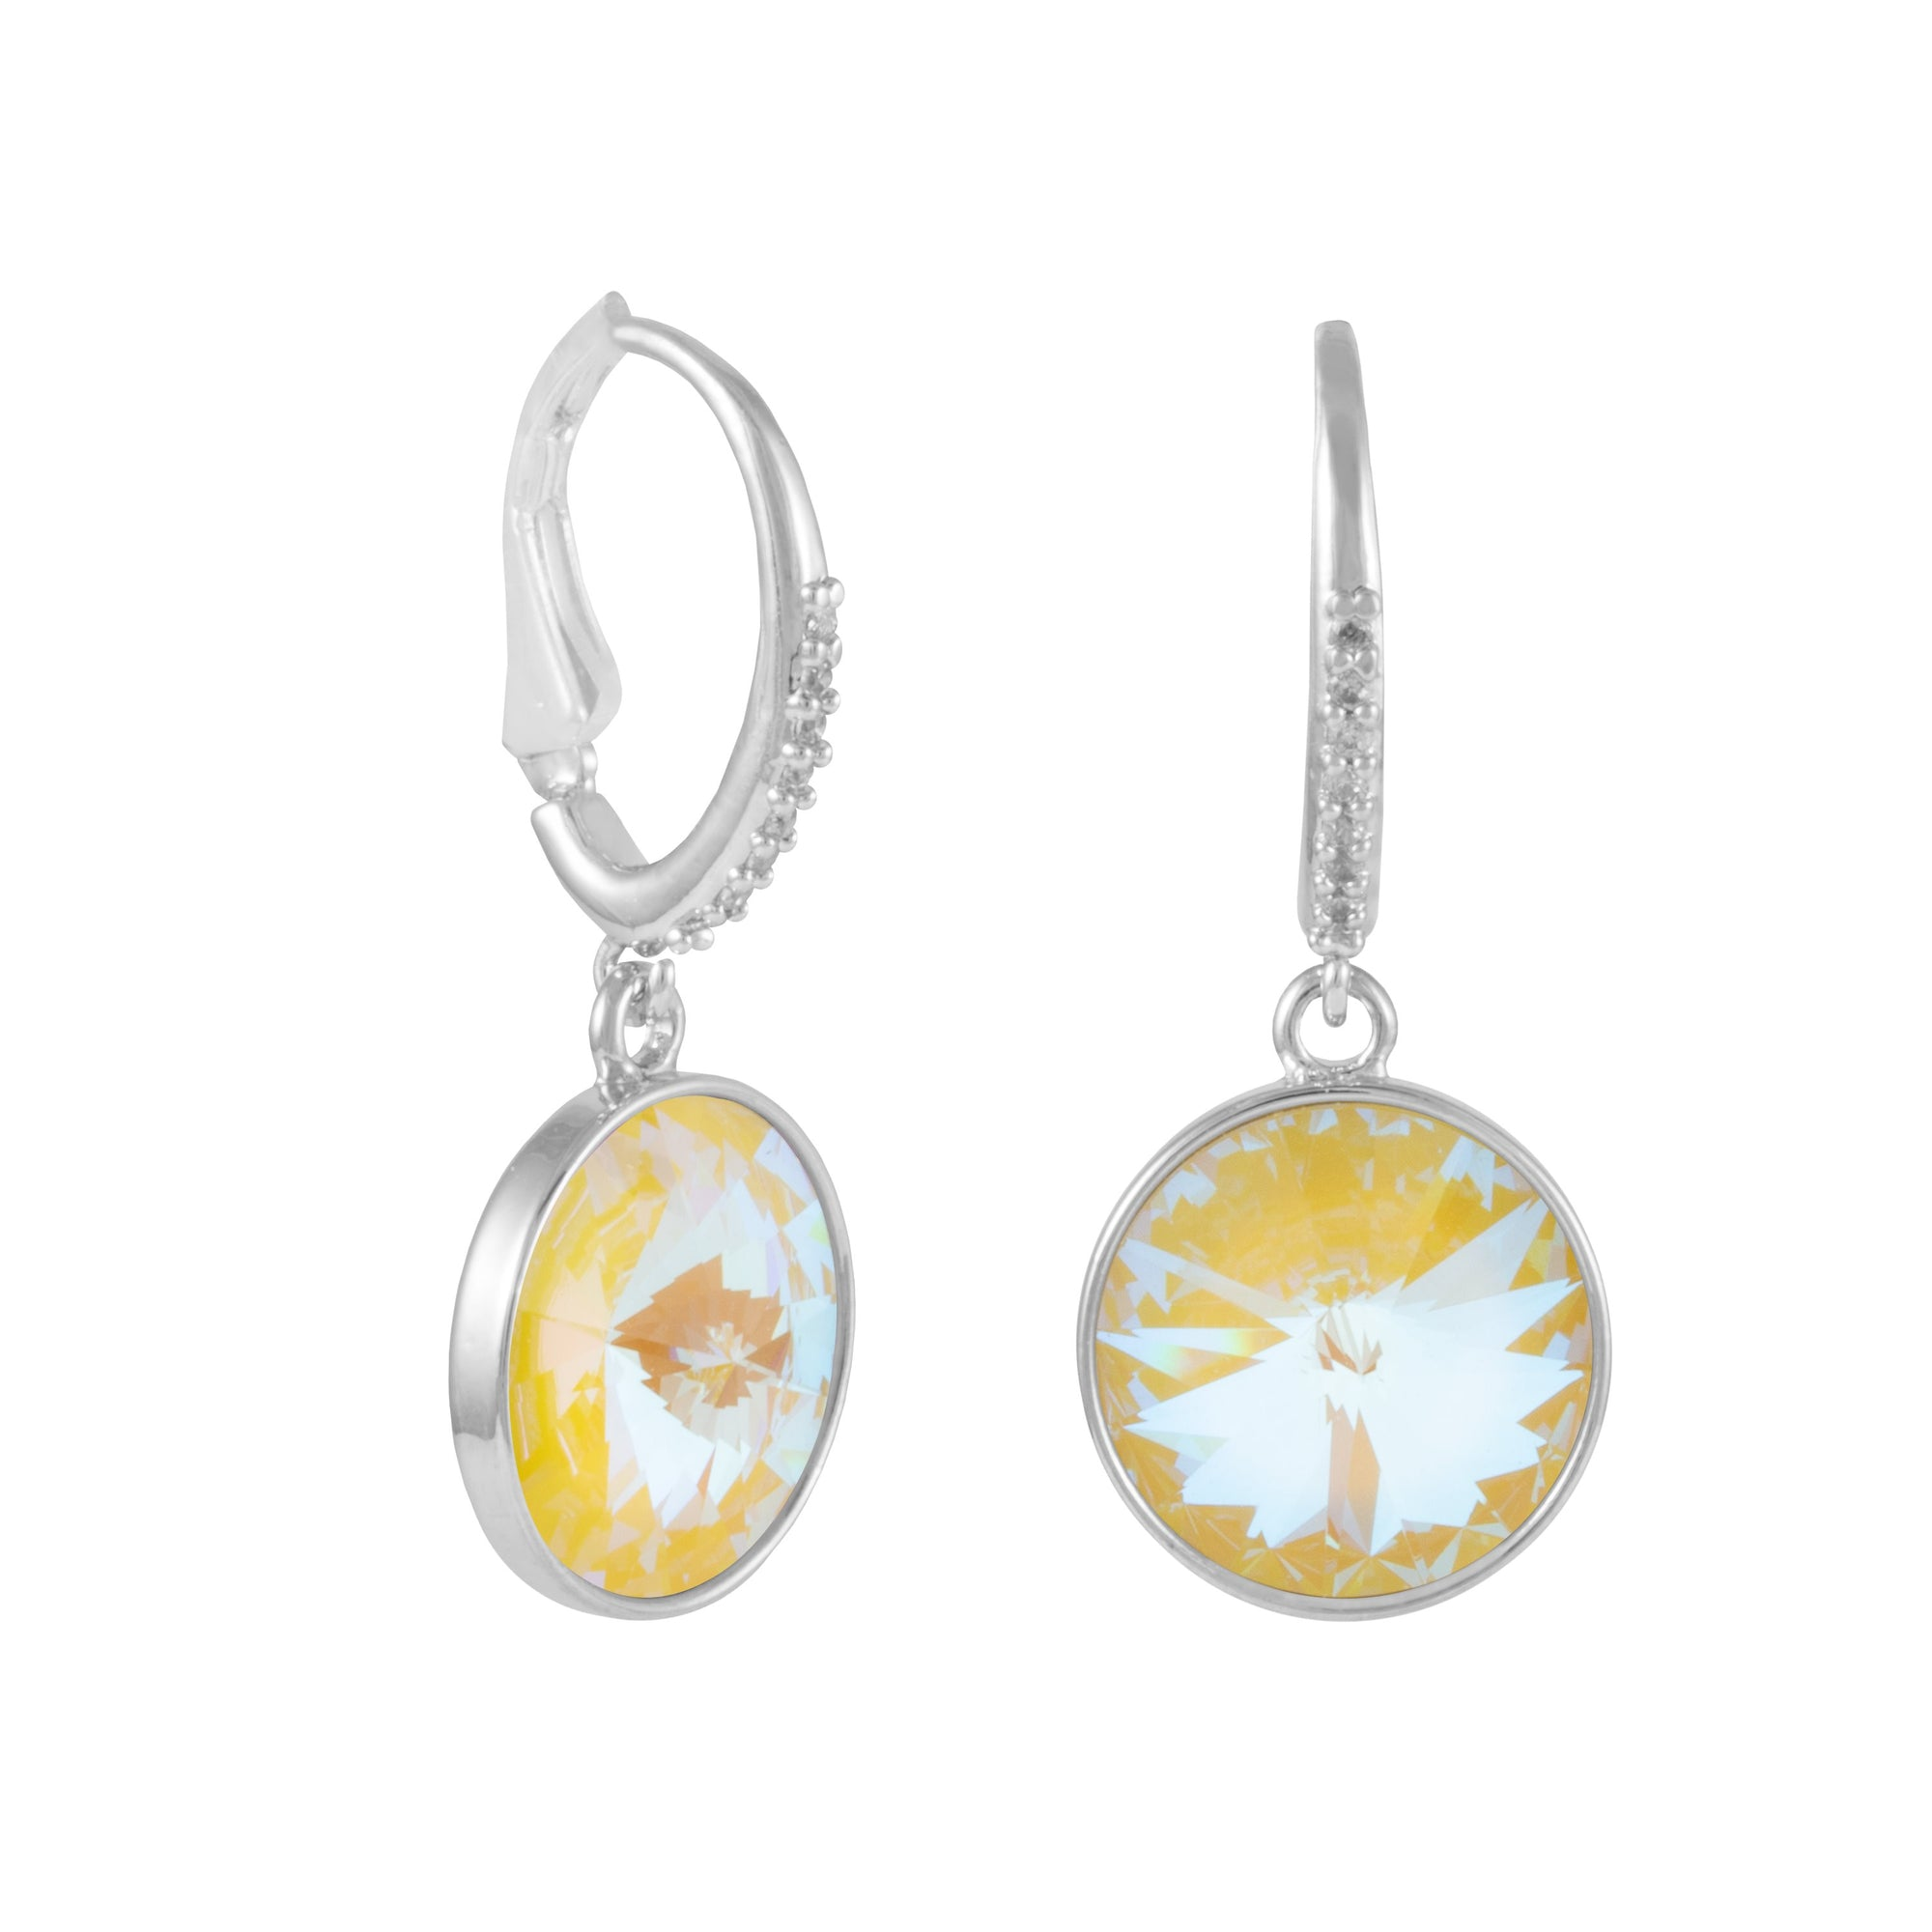 OSJ MARBELLA DANGLE EARRING SUNSHINE DELITE EARRING - FOREVER CRYSTALS - OSJ - SUNSHINE DELITE FOREVER